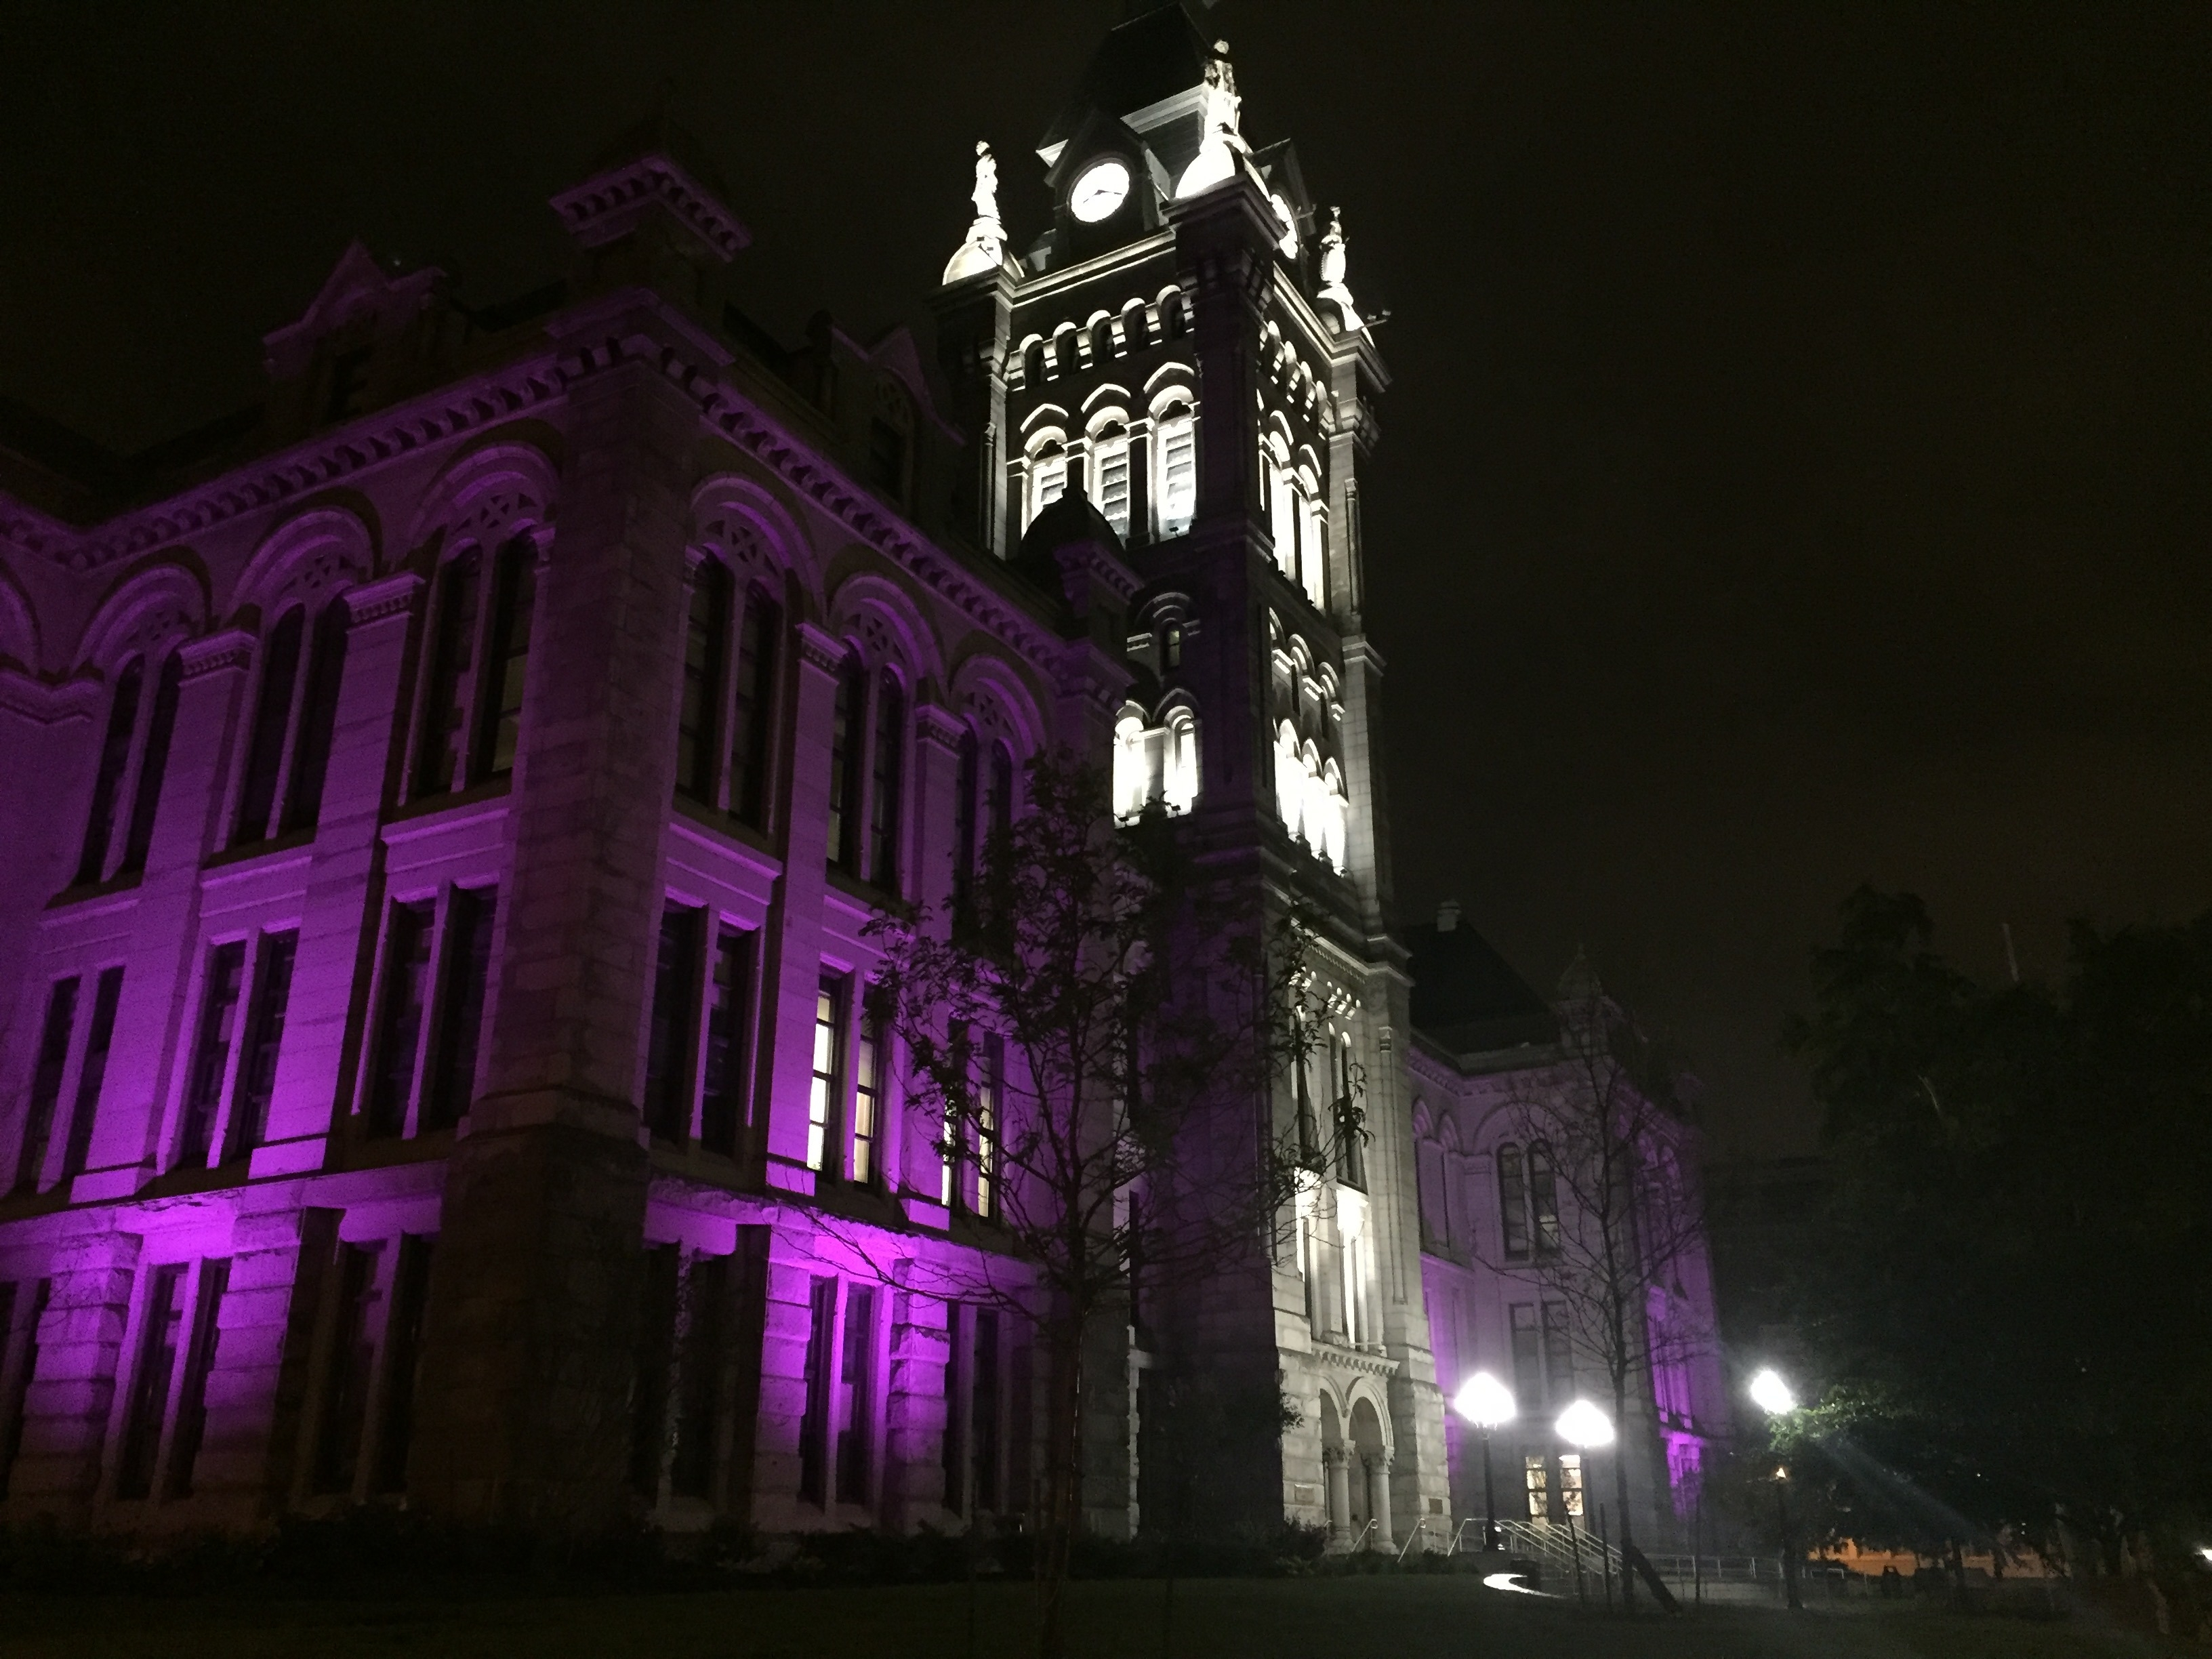 Erie County will shine the light on domestic violence during the month of October by illuminating historic County Hall in the color purple.